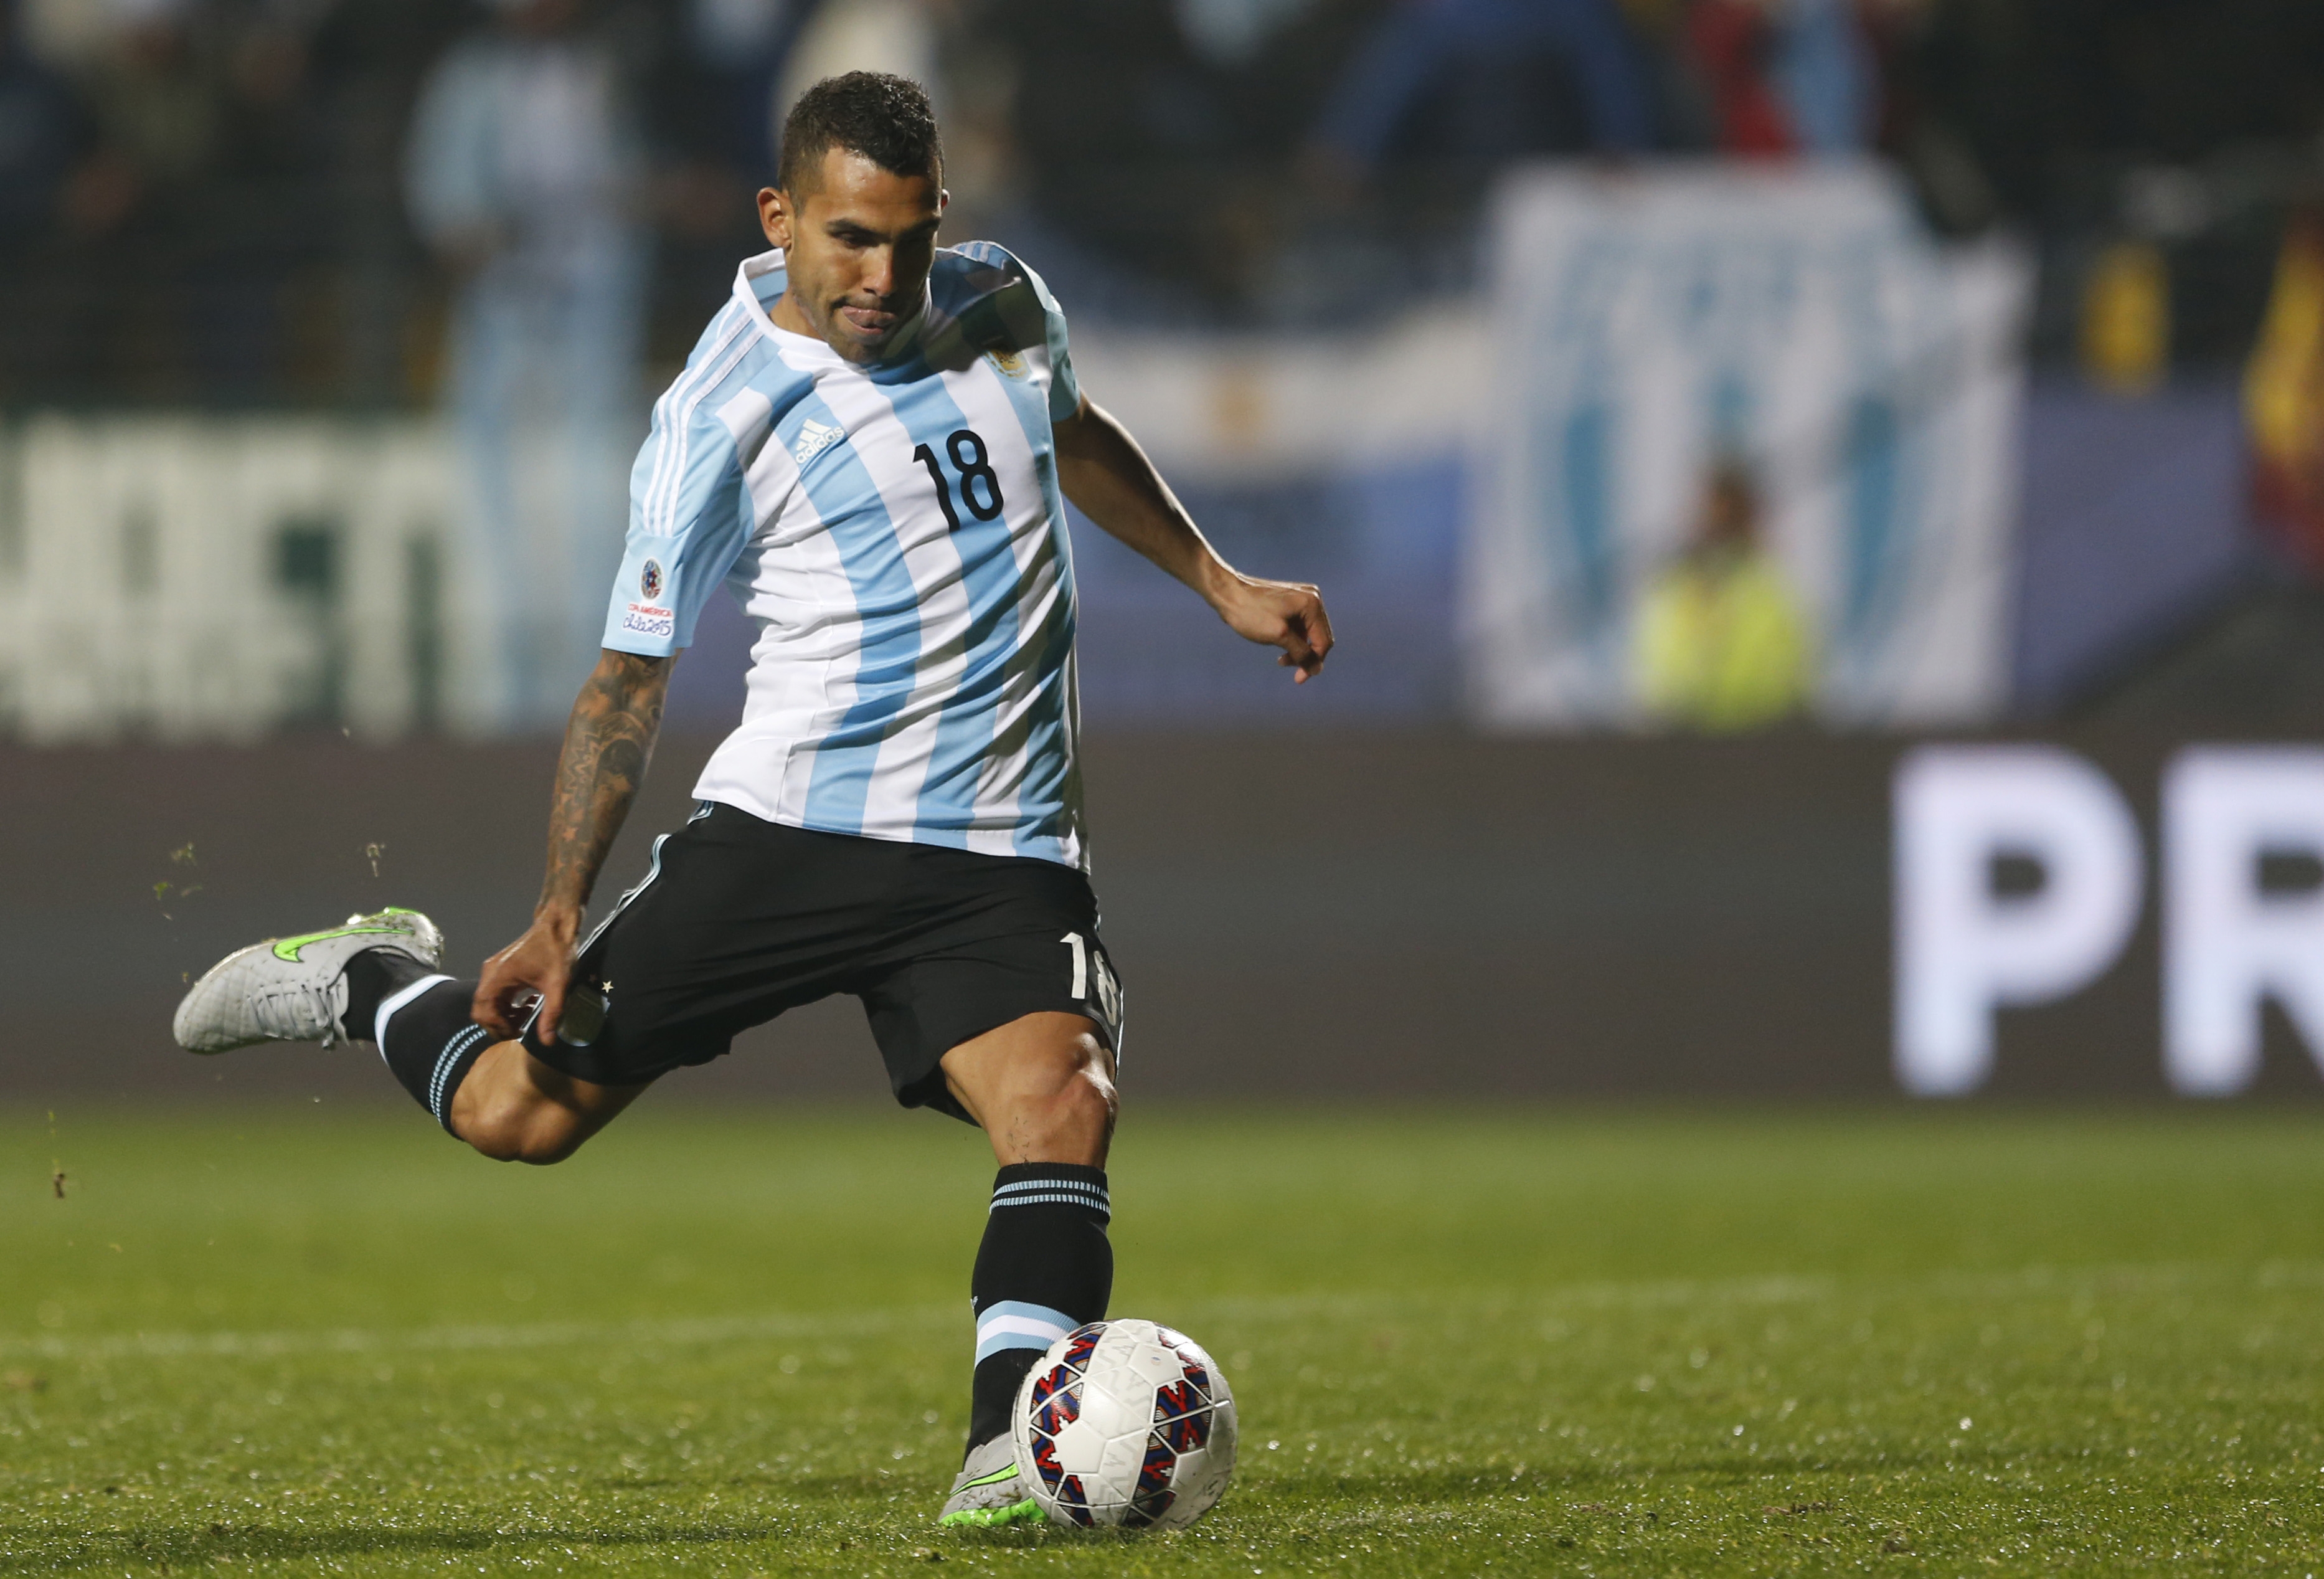 Watch Redemption for Carlos Tevez as Argentina down Colombia in